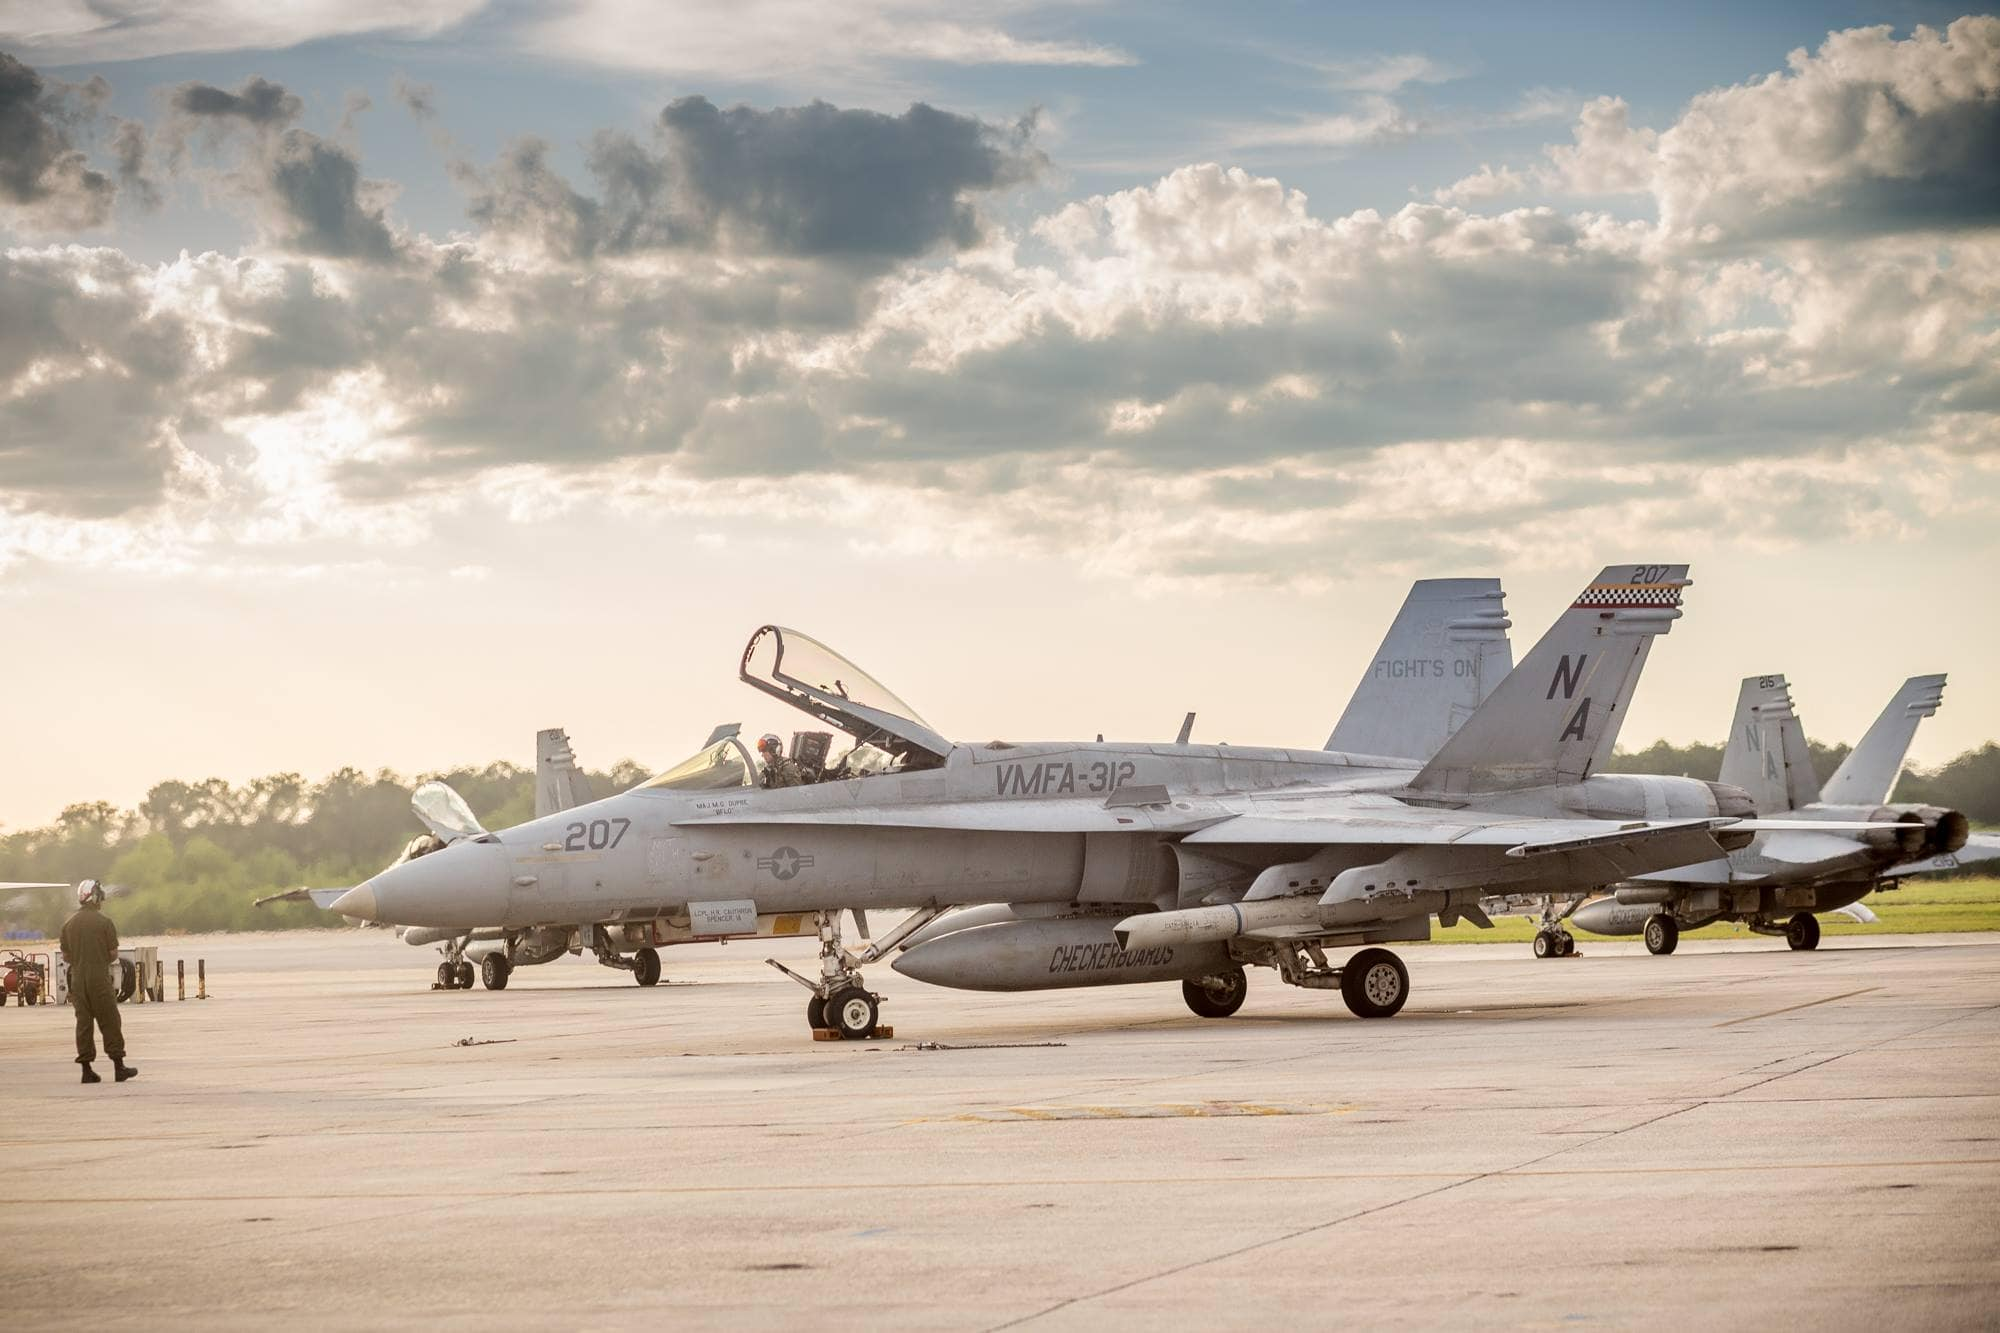 Welcome Home: VMFA-312 returns to MCAS Beaufort